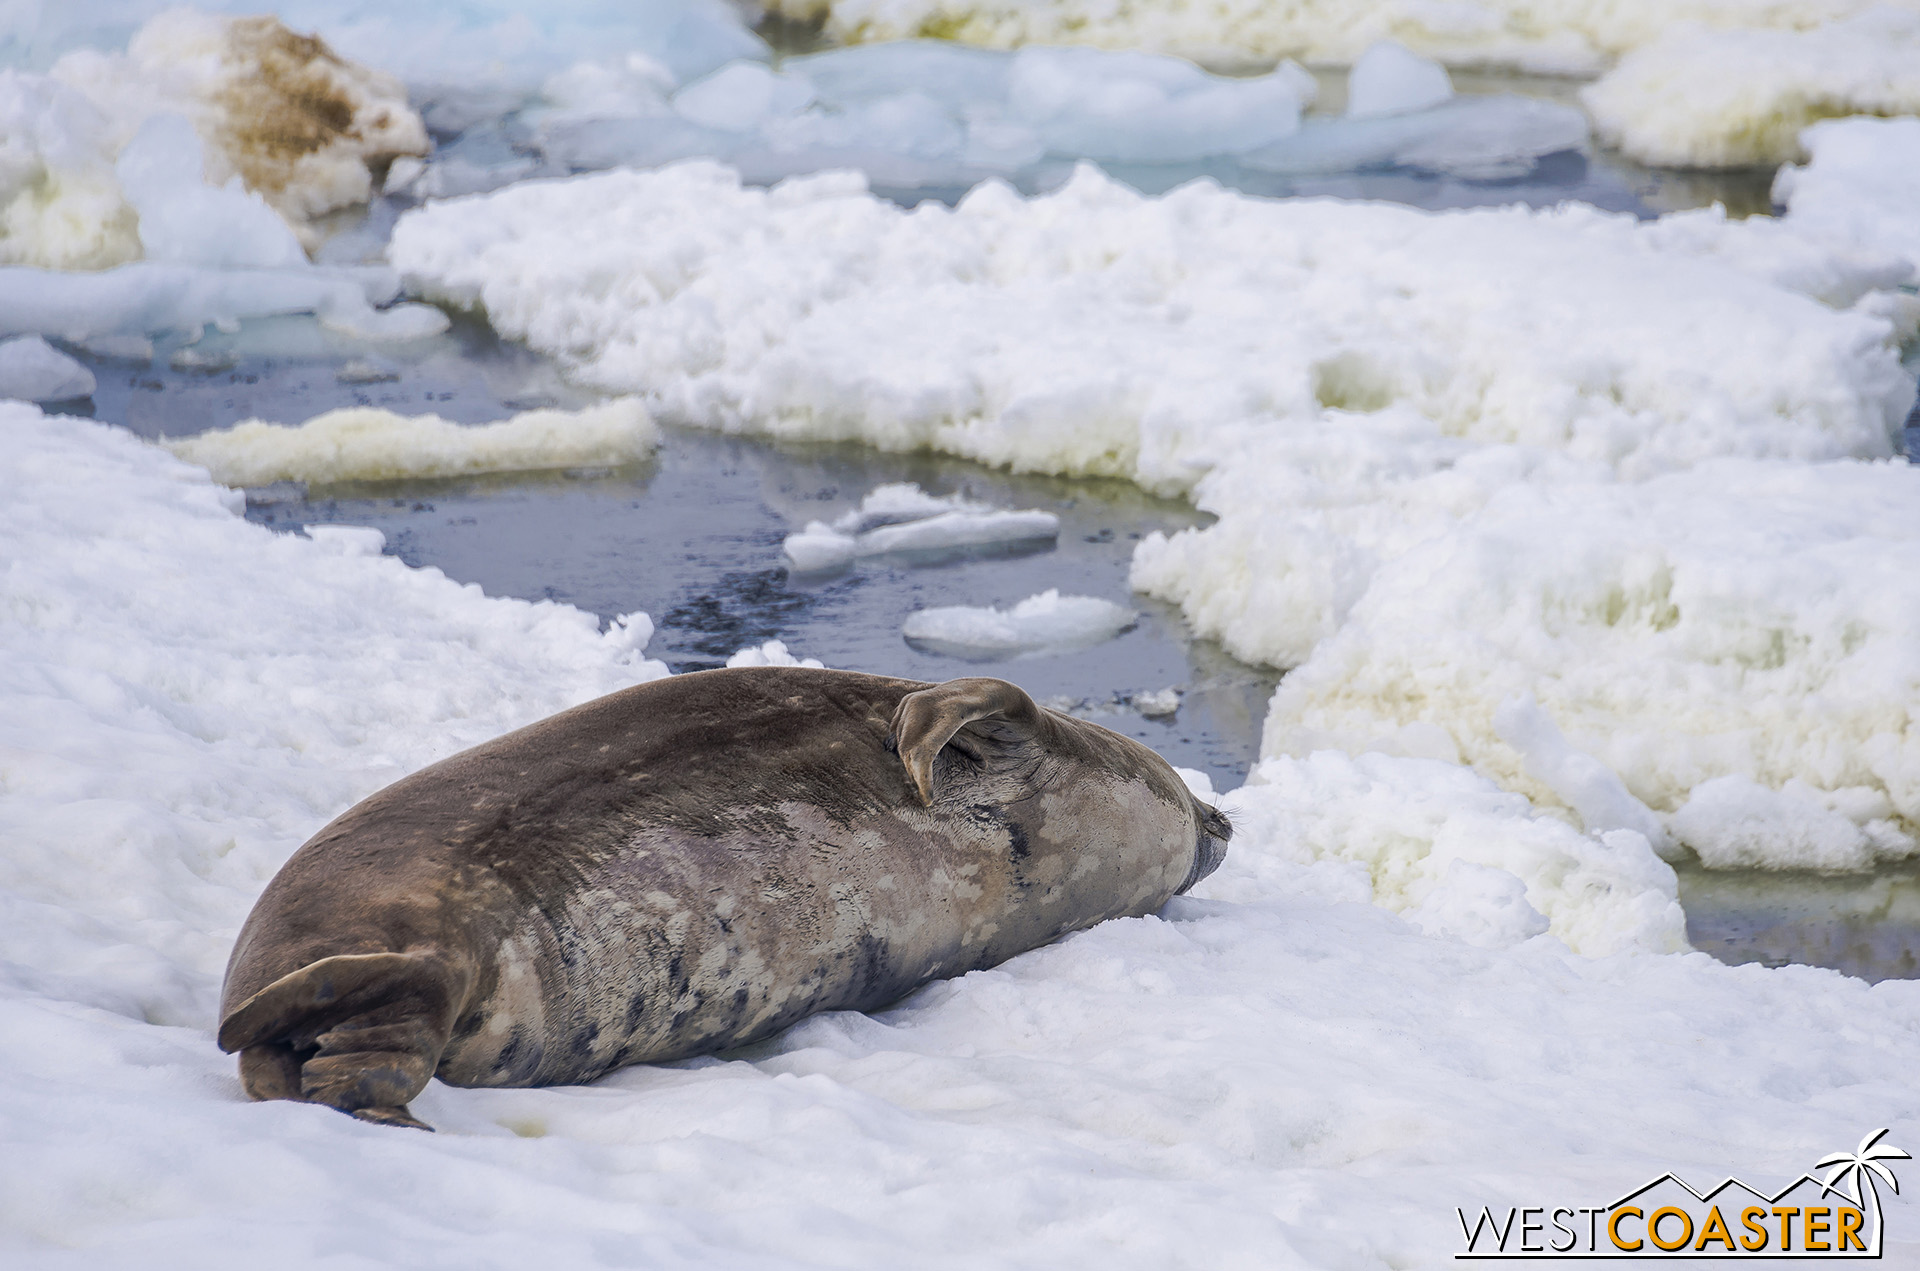 A Weddell seal naps nearby.